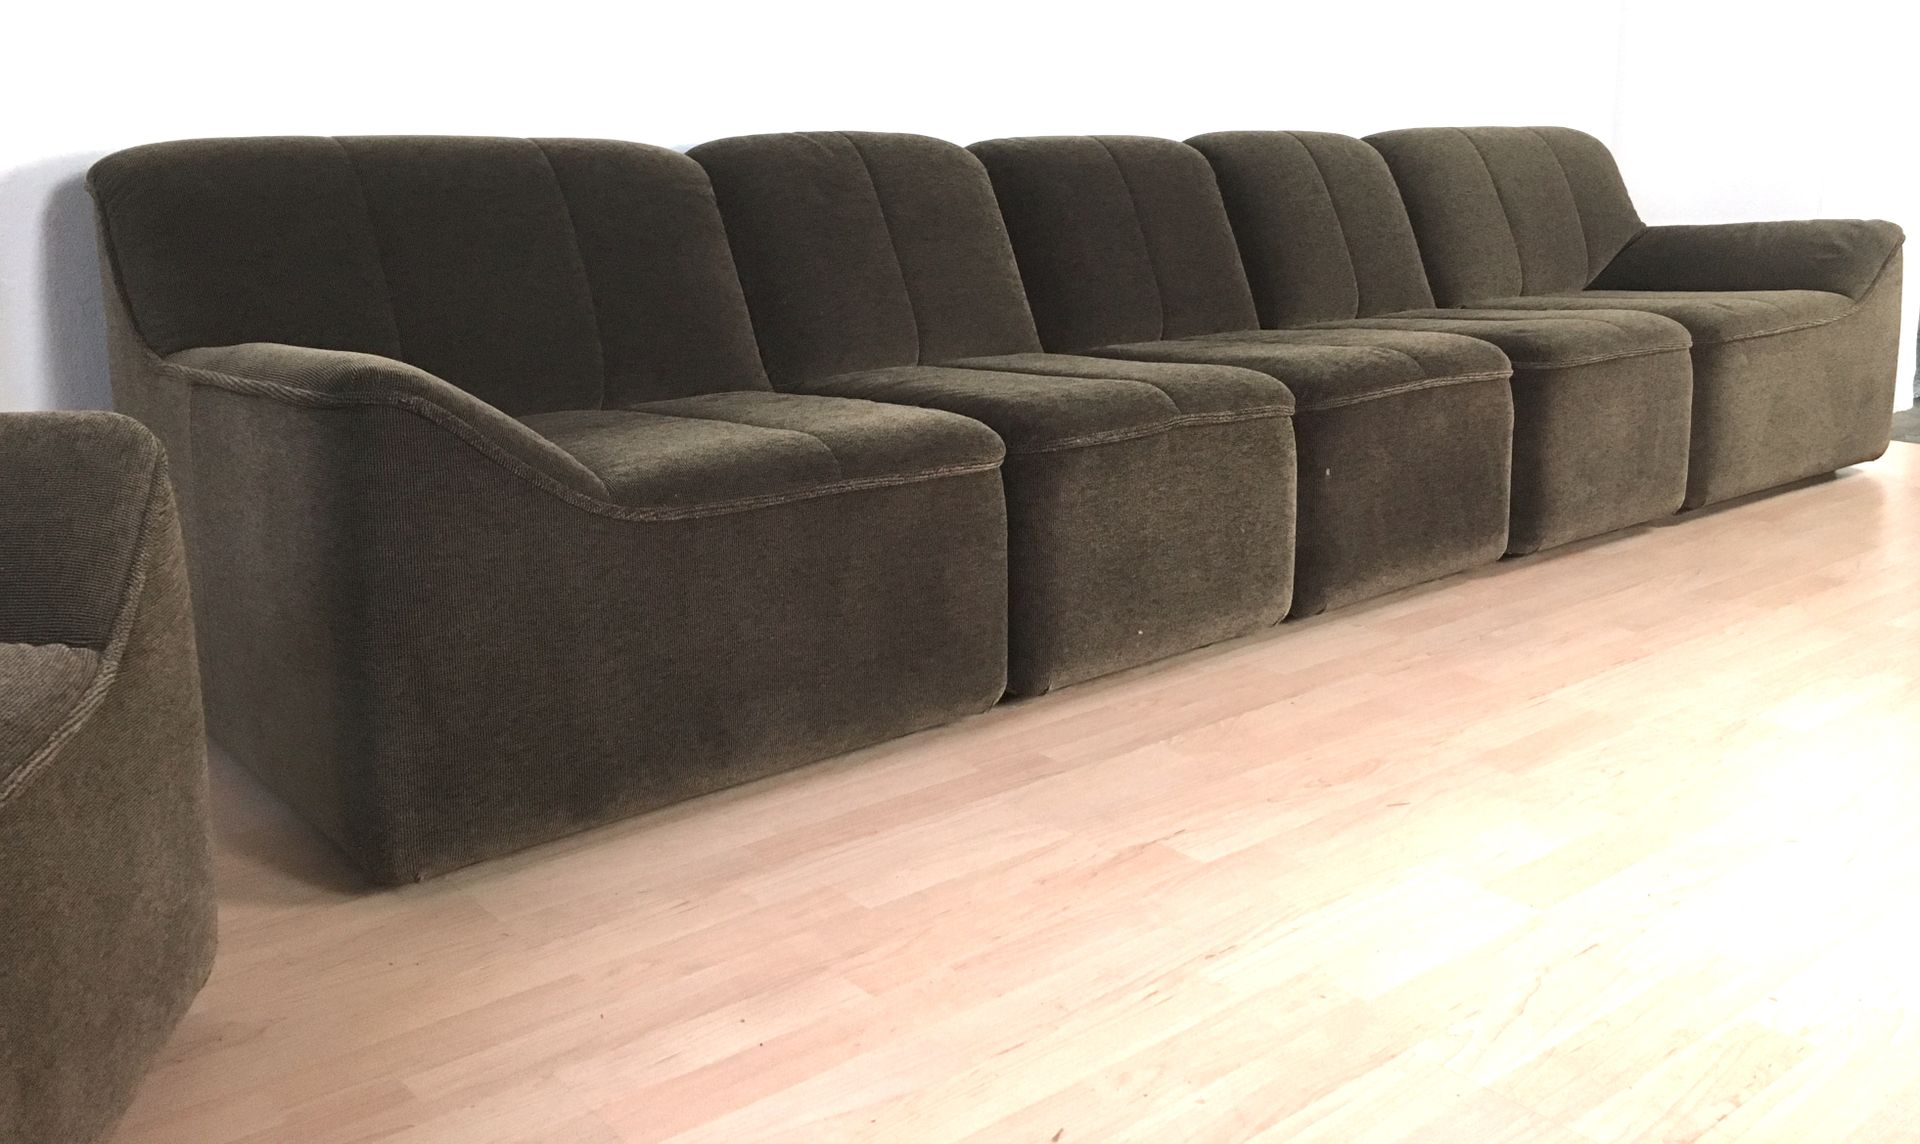 modular alpha sofa from cor 1960s for sale at pamono. Black Bedroom Furniture Sets. Home Design Ideas